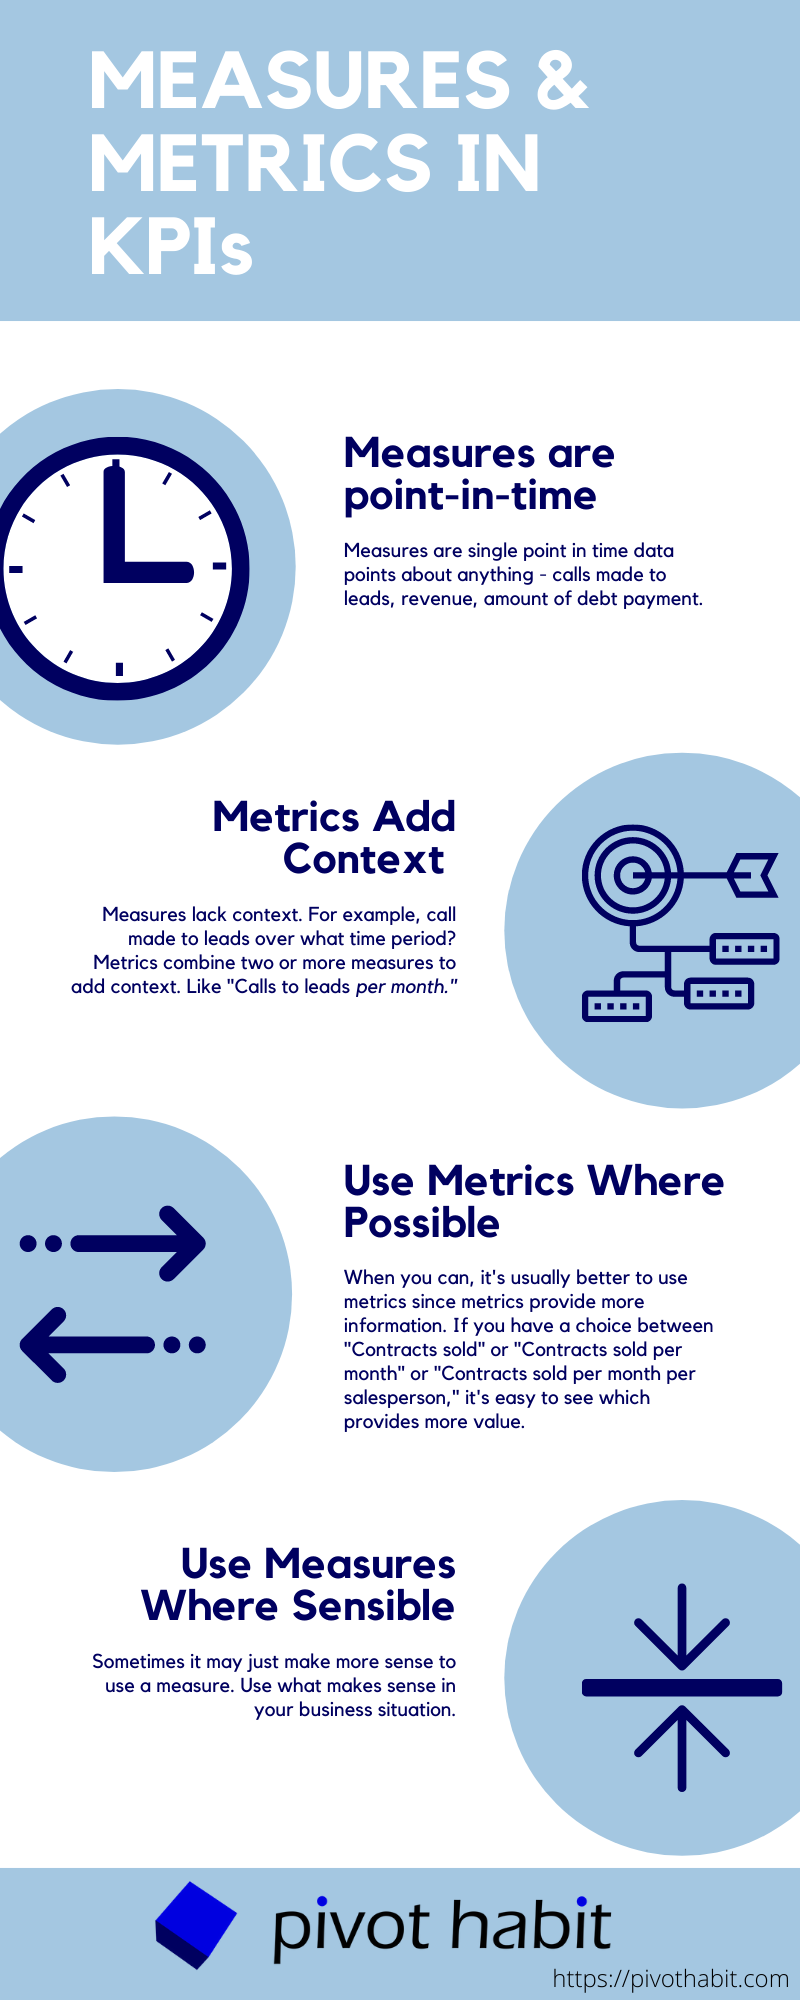 How to use measures and metrics effectively to create KPIs.